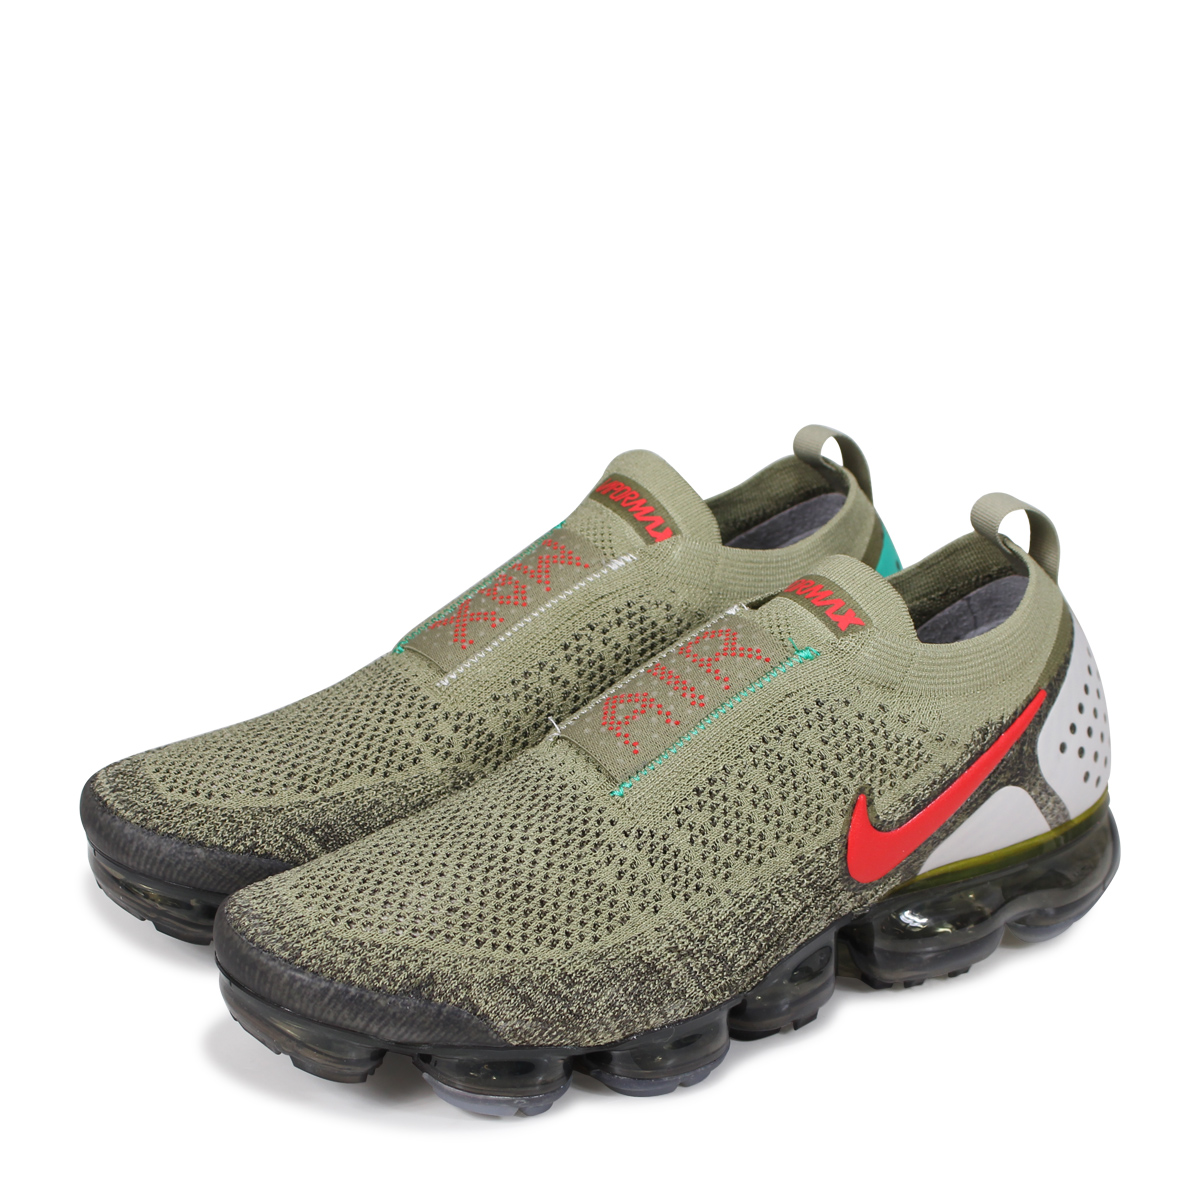 buy online 16a88 2f3d9 NIKE AIR VAPORMAX FK MOC 2 Nike air vapor max fried food knit 2 sneakers  men AH7006-200 olive [load planned Shinnyu load in reservation product 6/15  ...